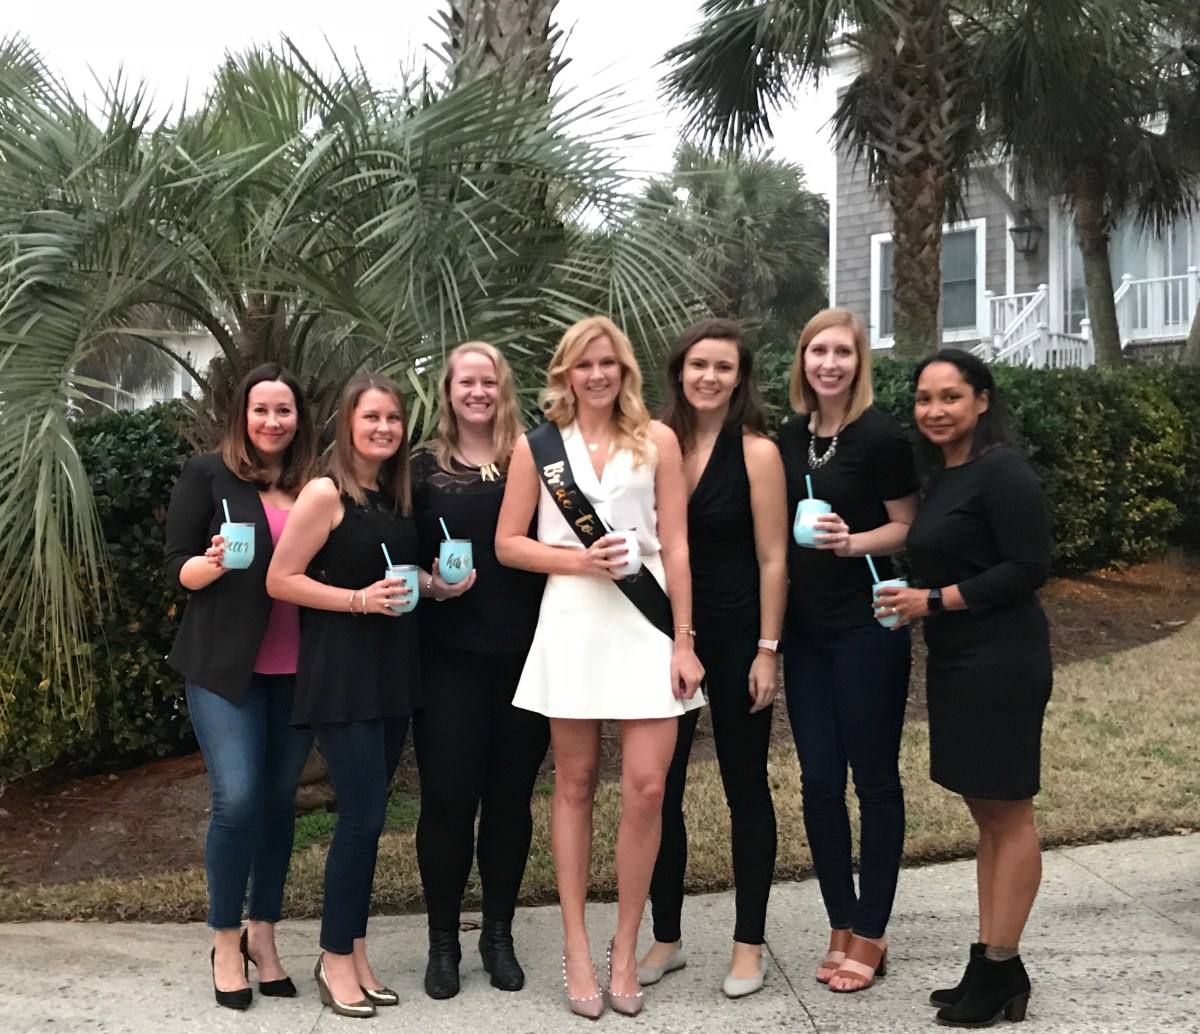 Bachelorette Party Outfit & Ladies Weekend in South Carolina SCsScoop.com